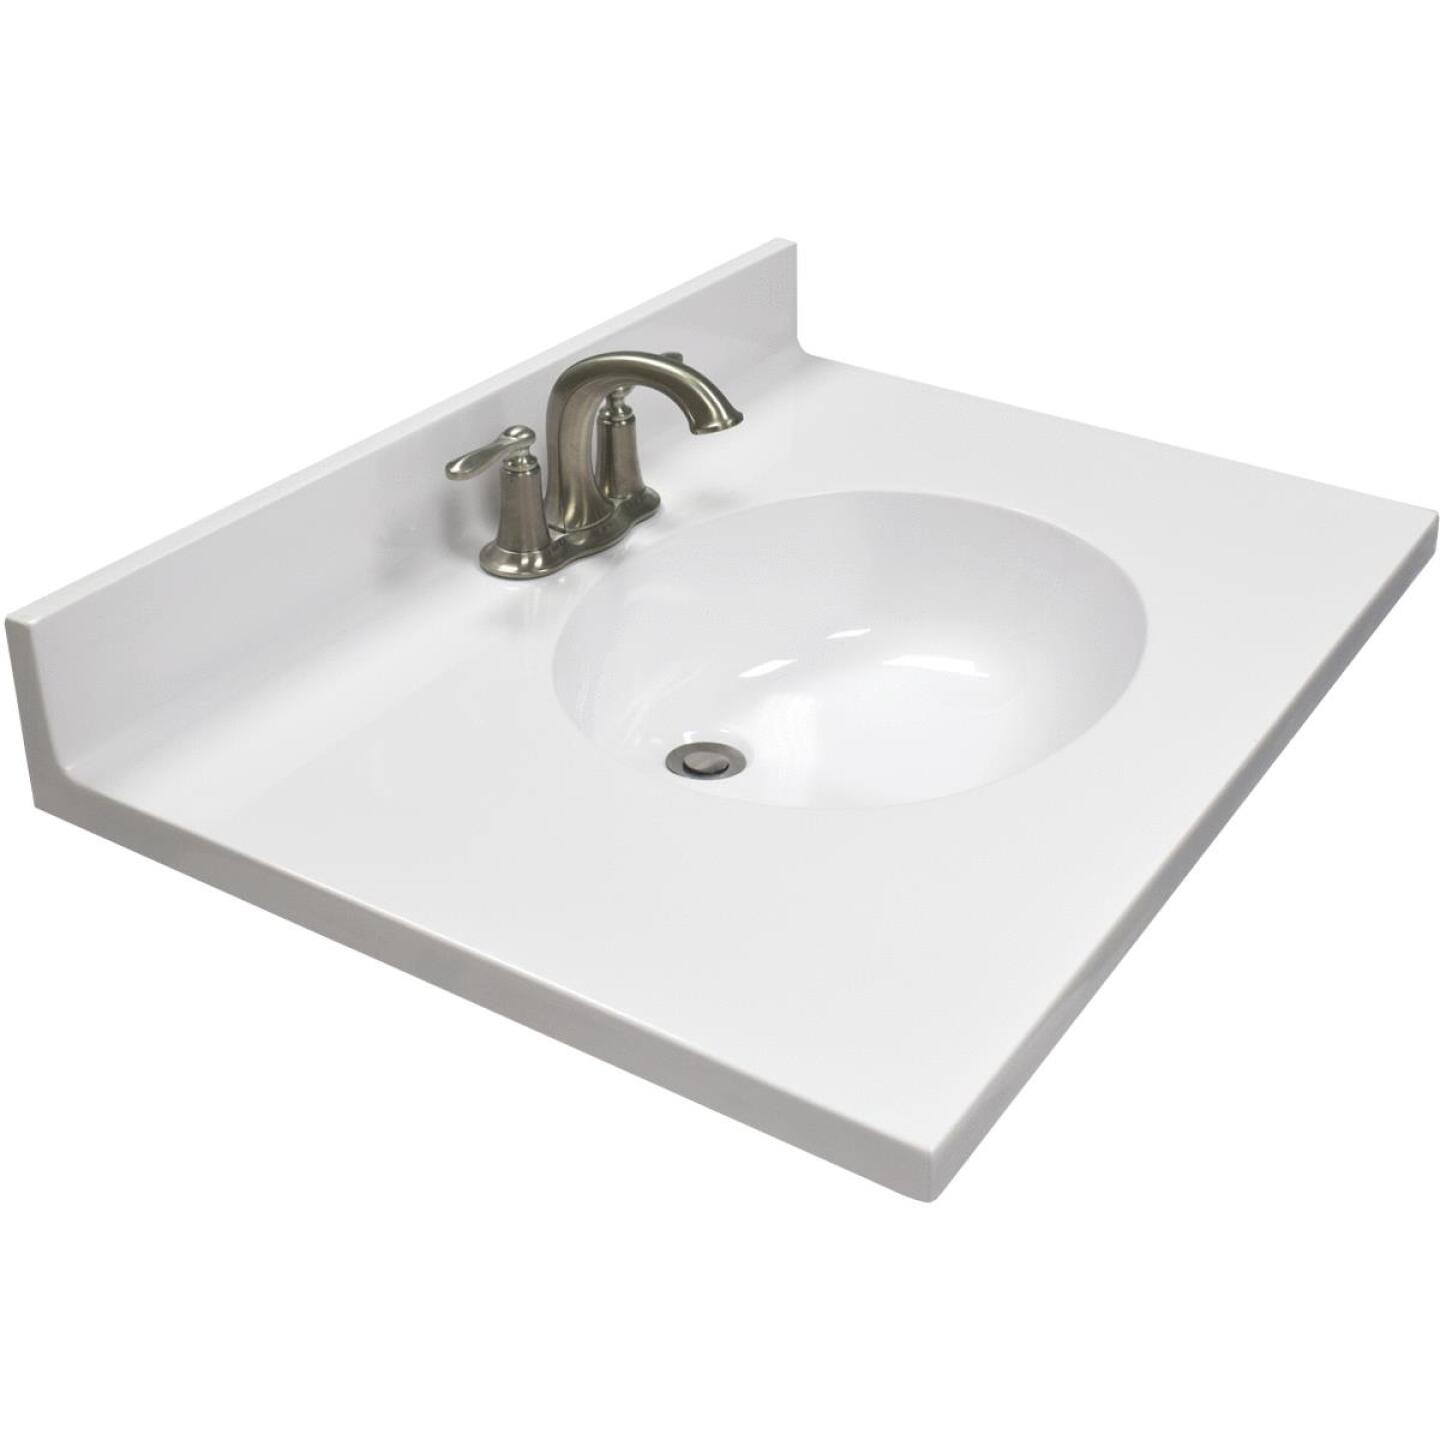 Modular Vanity Tops 31 In. W x 22 In. D Solid White Cultured Marble Vanity Top with Oval Bowl Image 1